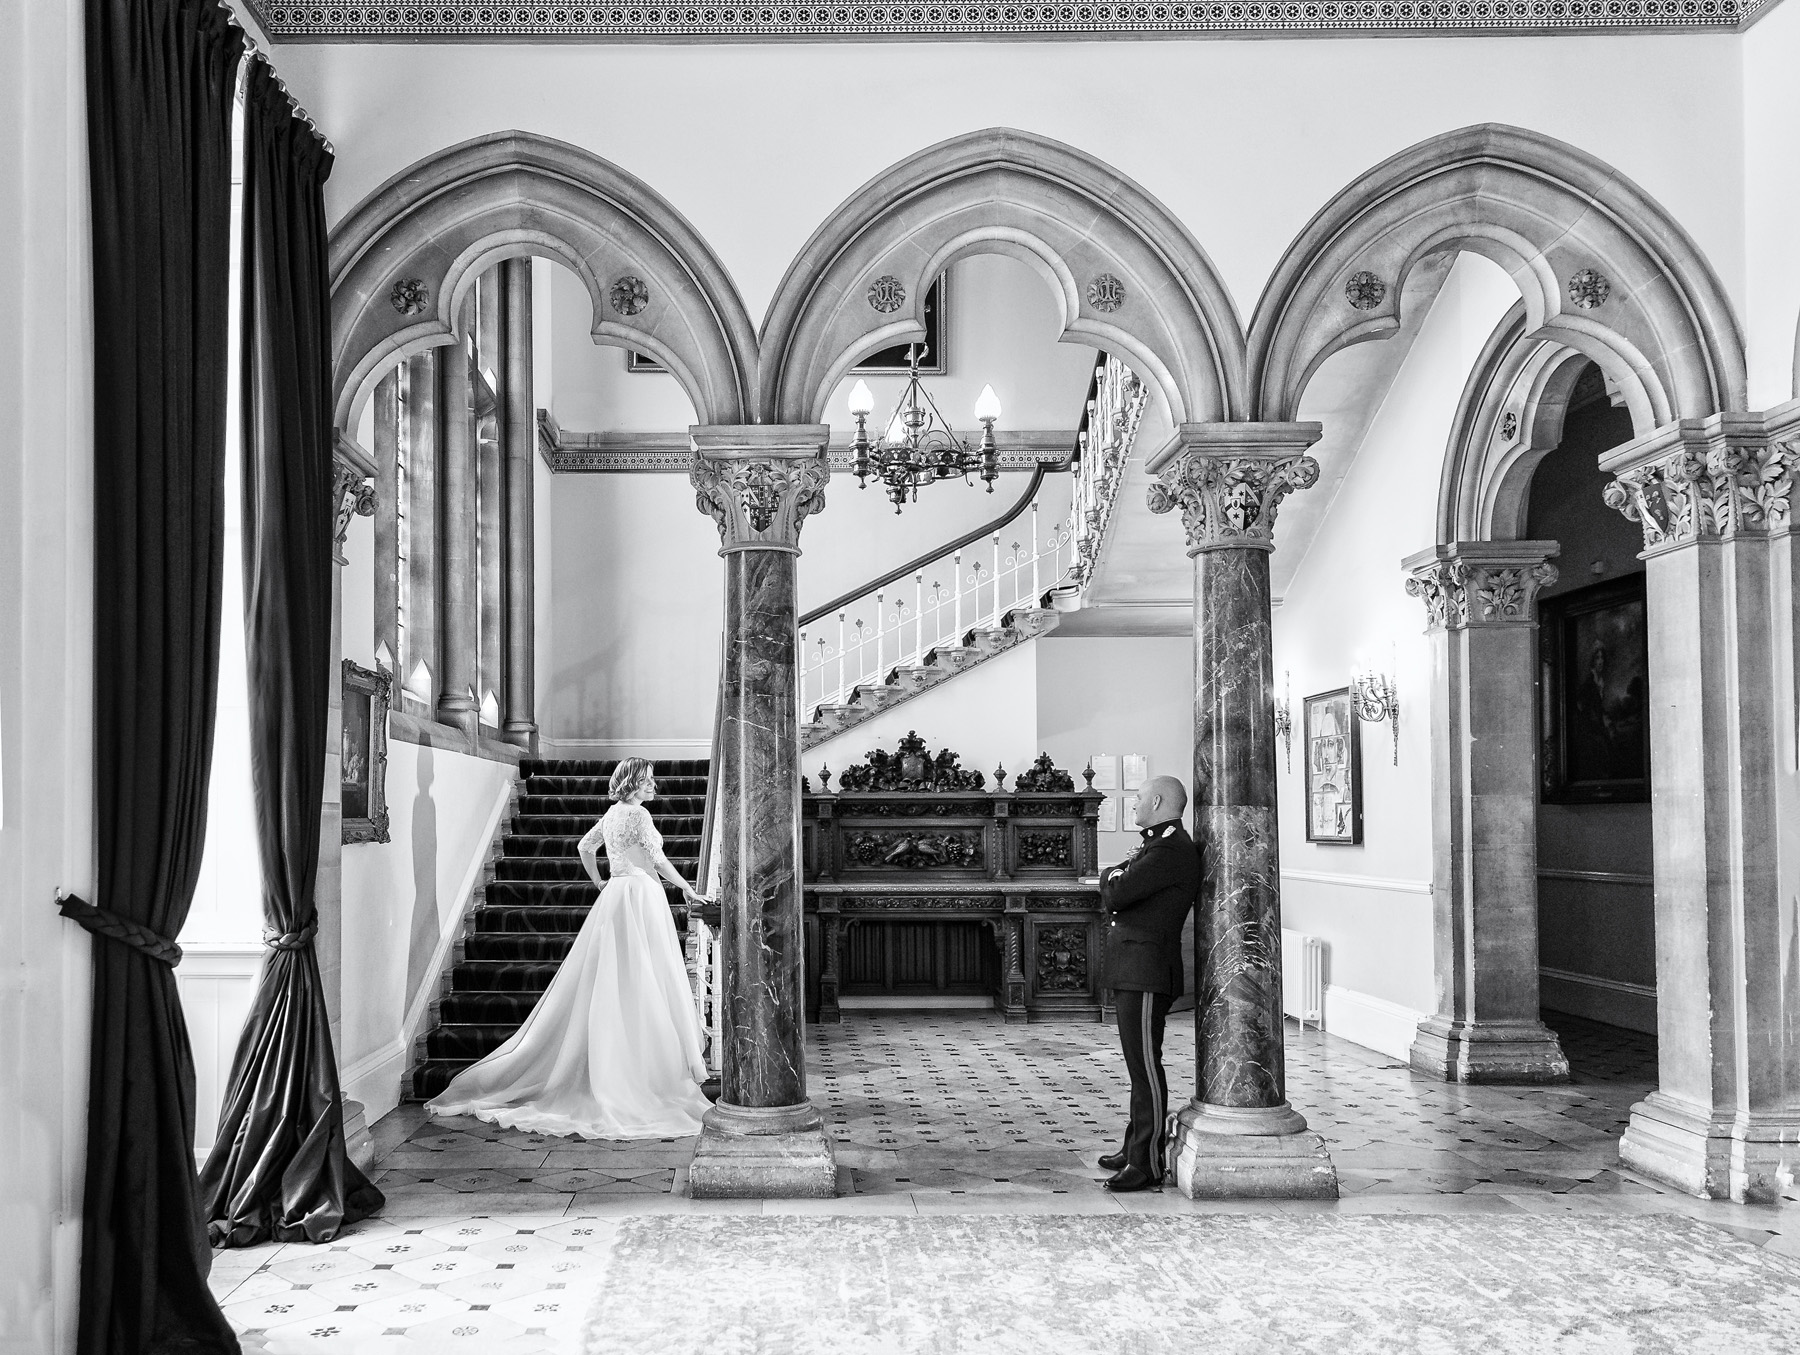 Black & white classic portrait of Bride & groom in marble arched reception entrance at Walton hall